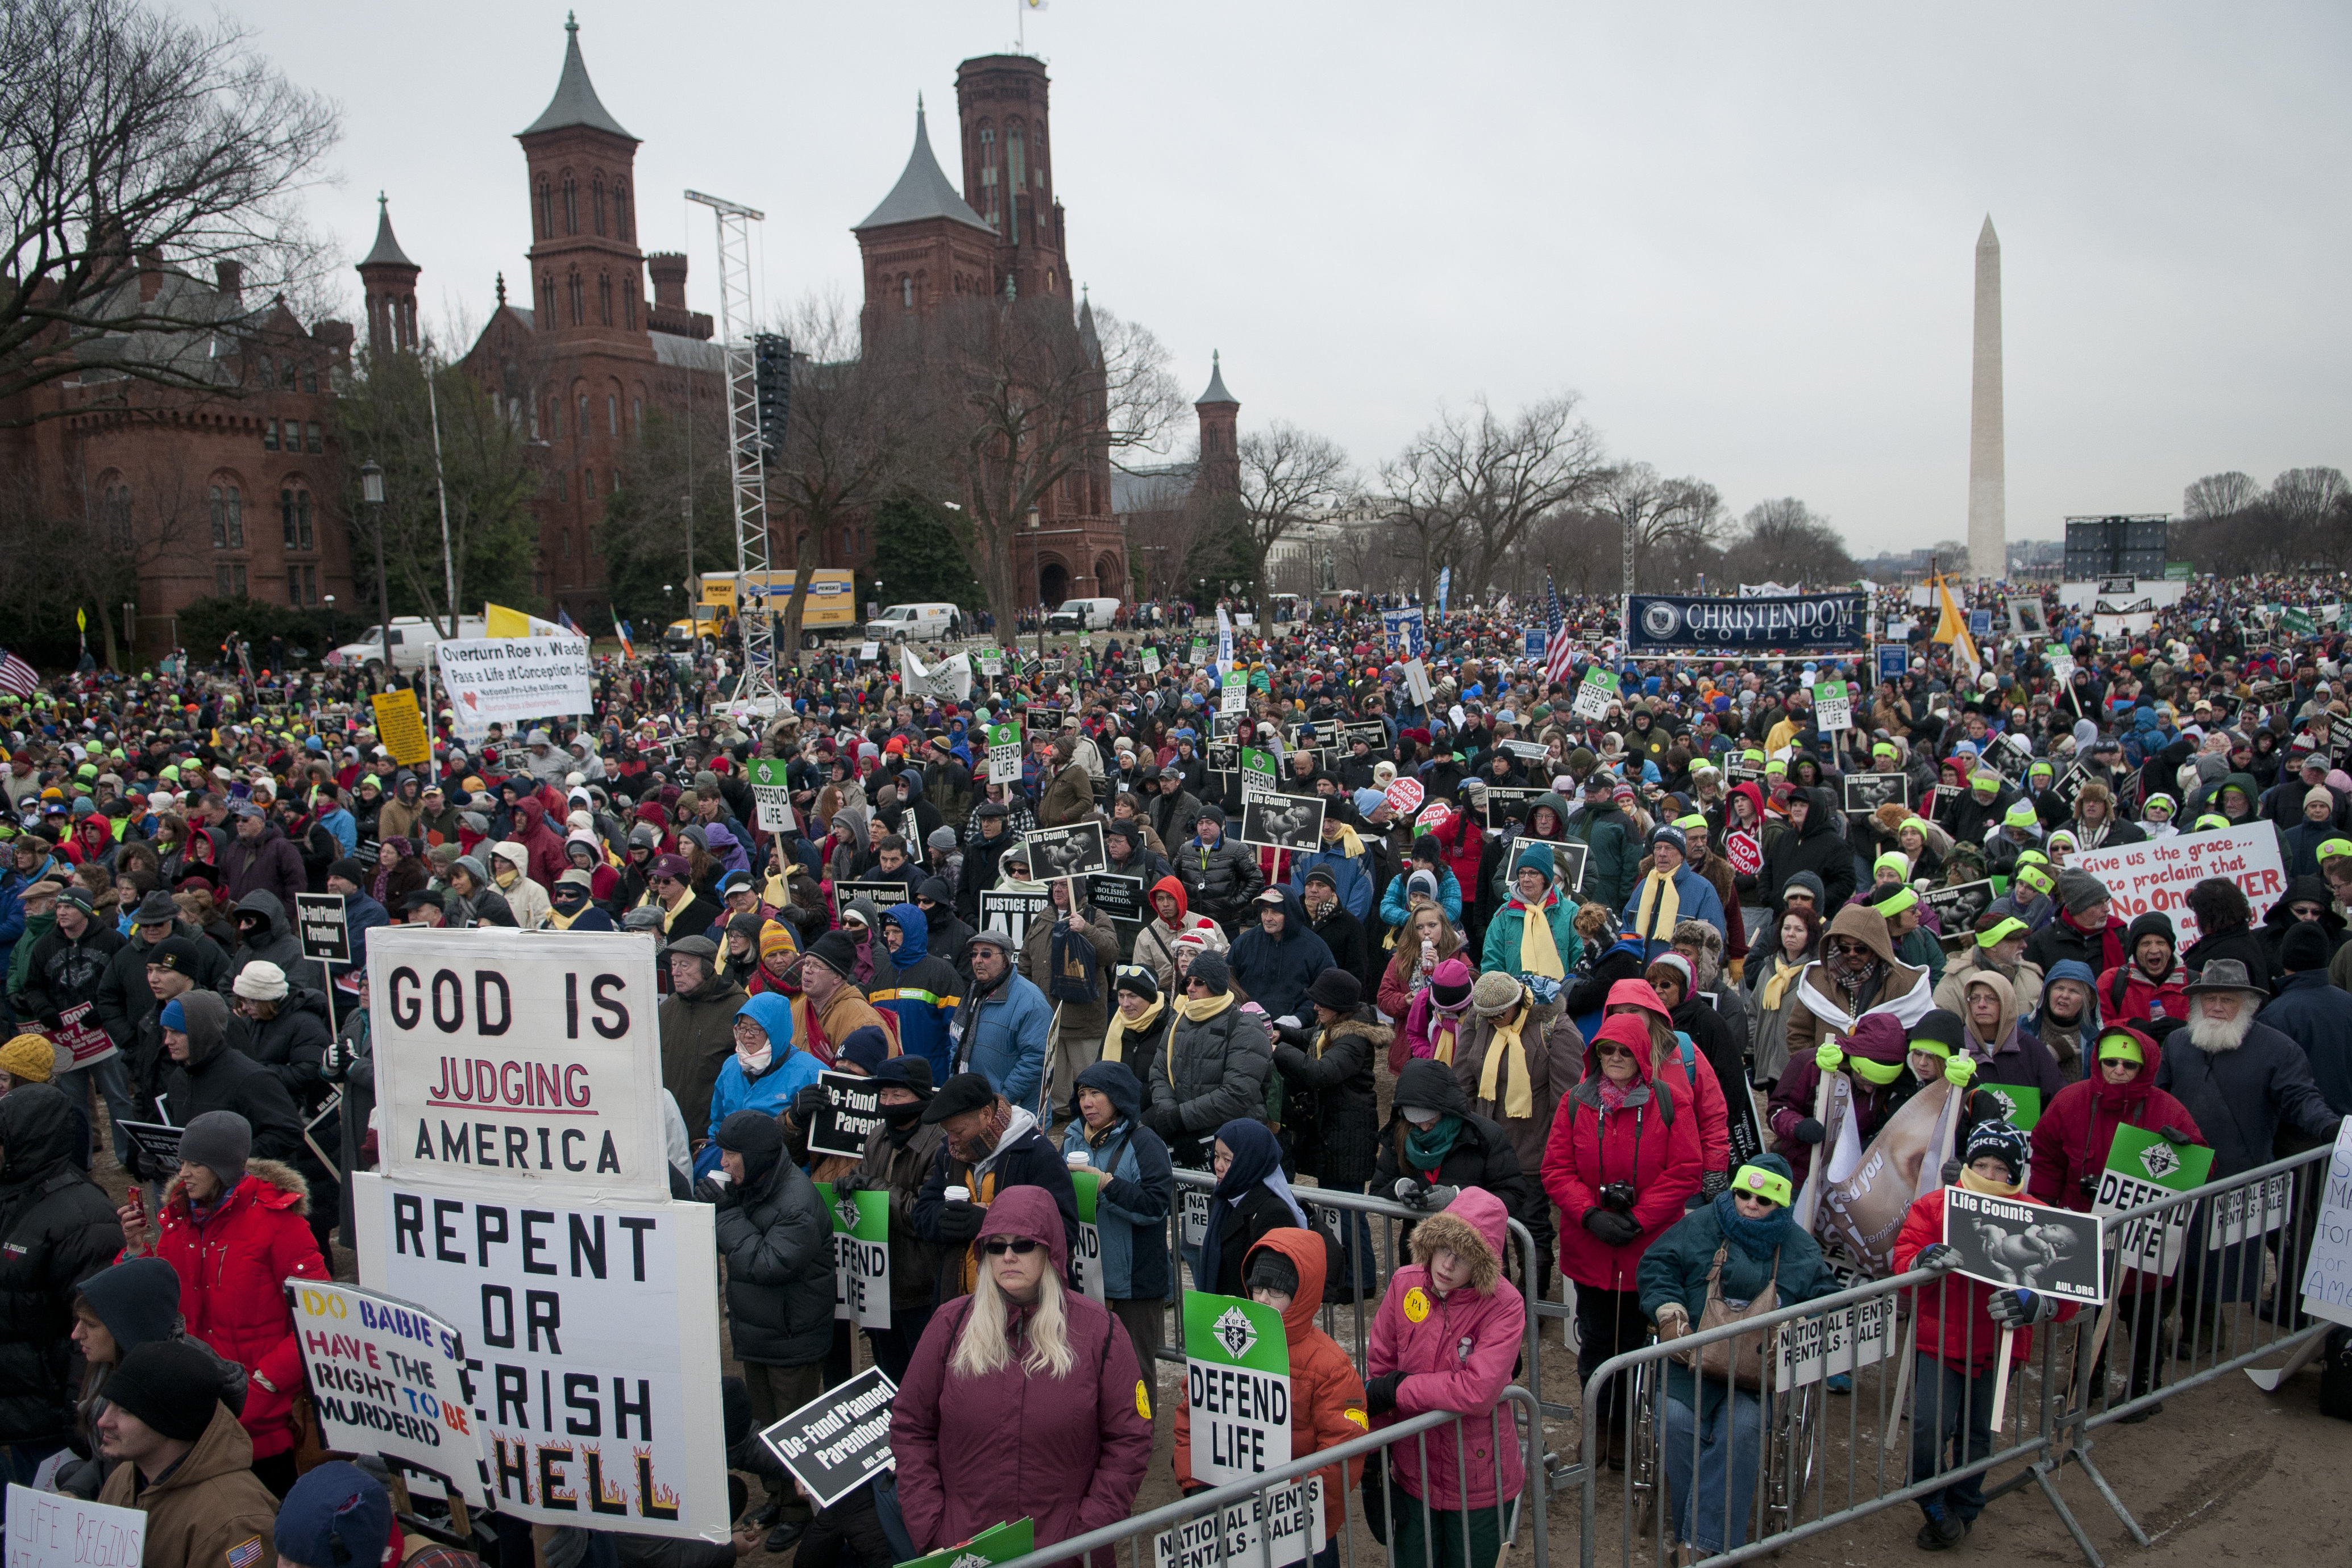 Participants braved wind and snow flurries to gather at the March for Life rally.